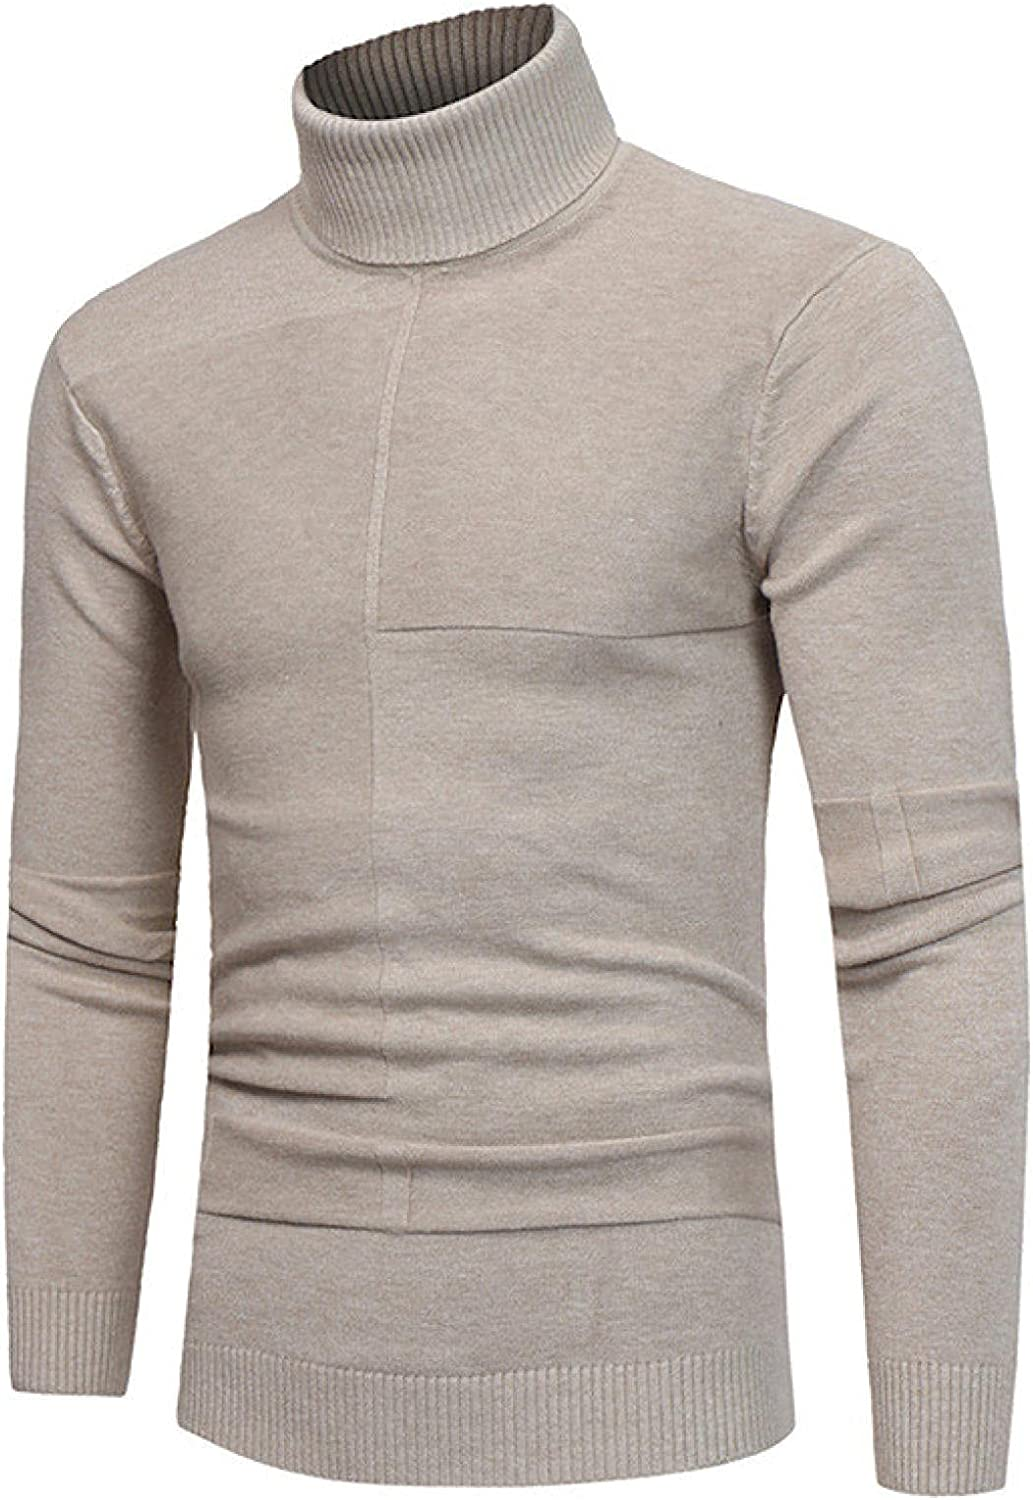 Huangse Mens Slim Fit Turtleneck Sweater Basic Design Casual Knitted Ribbed Thermal Pullover Sweater L-3XL